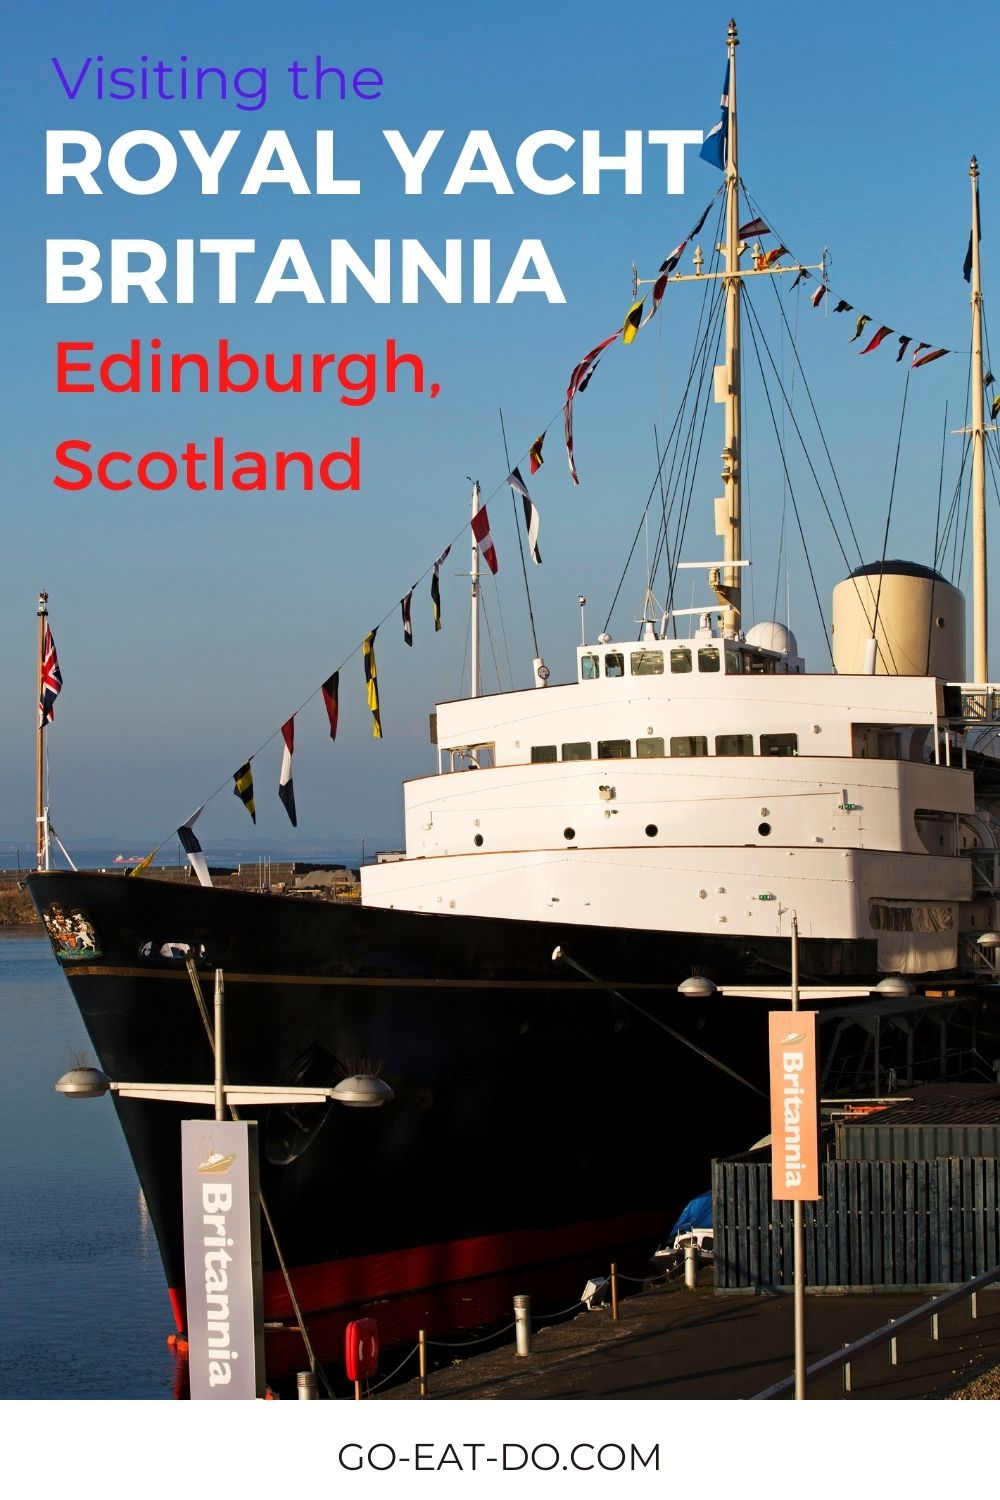 Pinterest pin for Go Eat Do's blog post about visiting the Royal Yacht Britannia in Edinburgh, Scotland